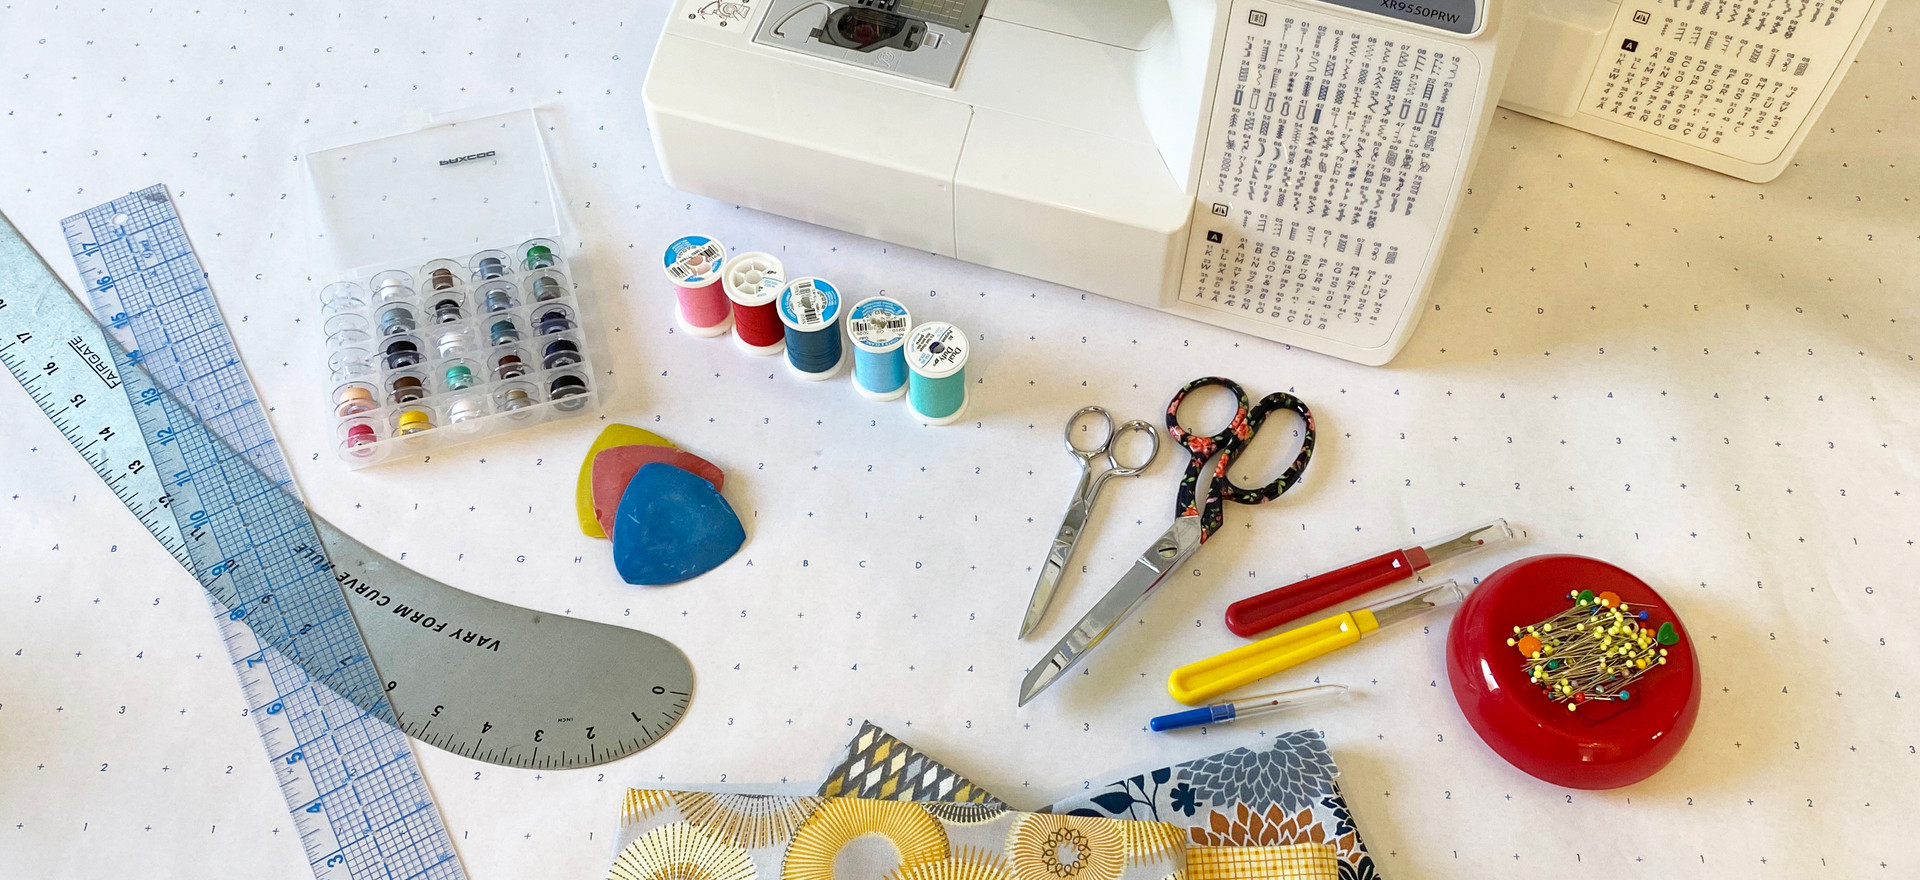 Bring your creative vision to life on the sewing machine!